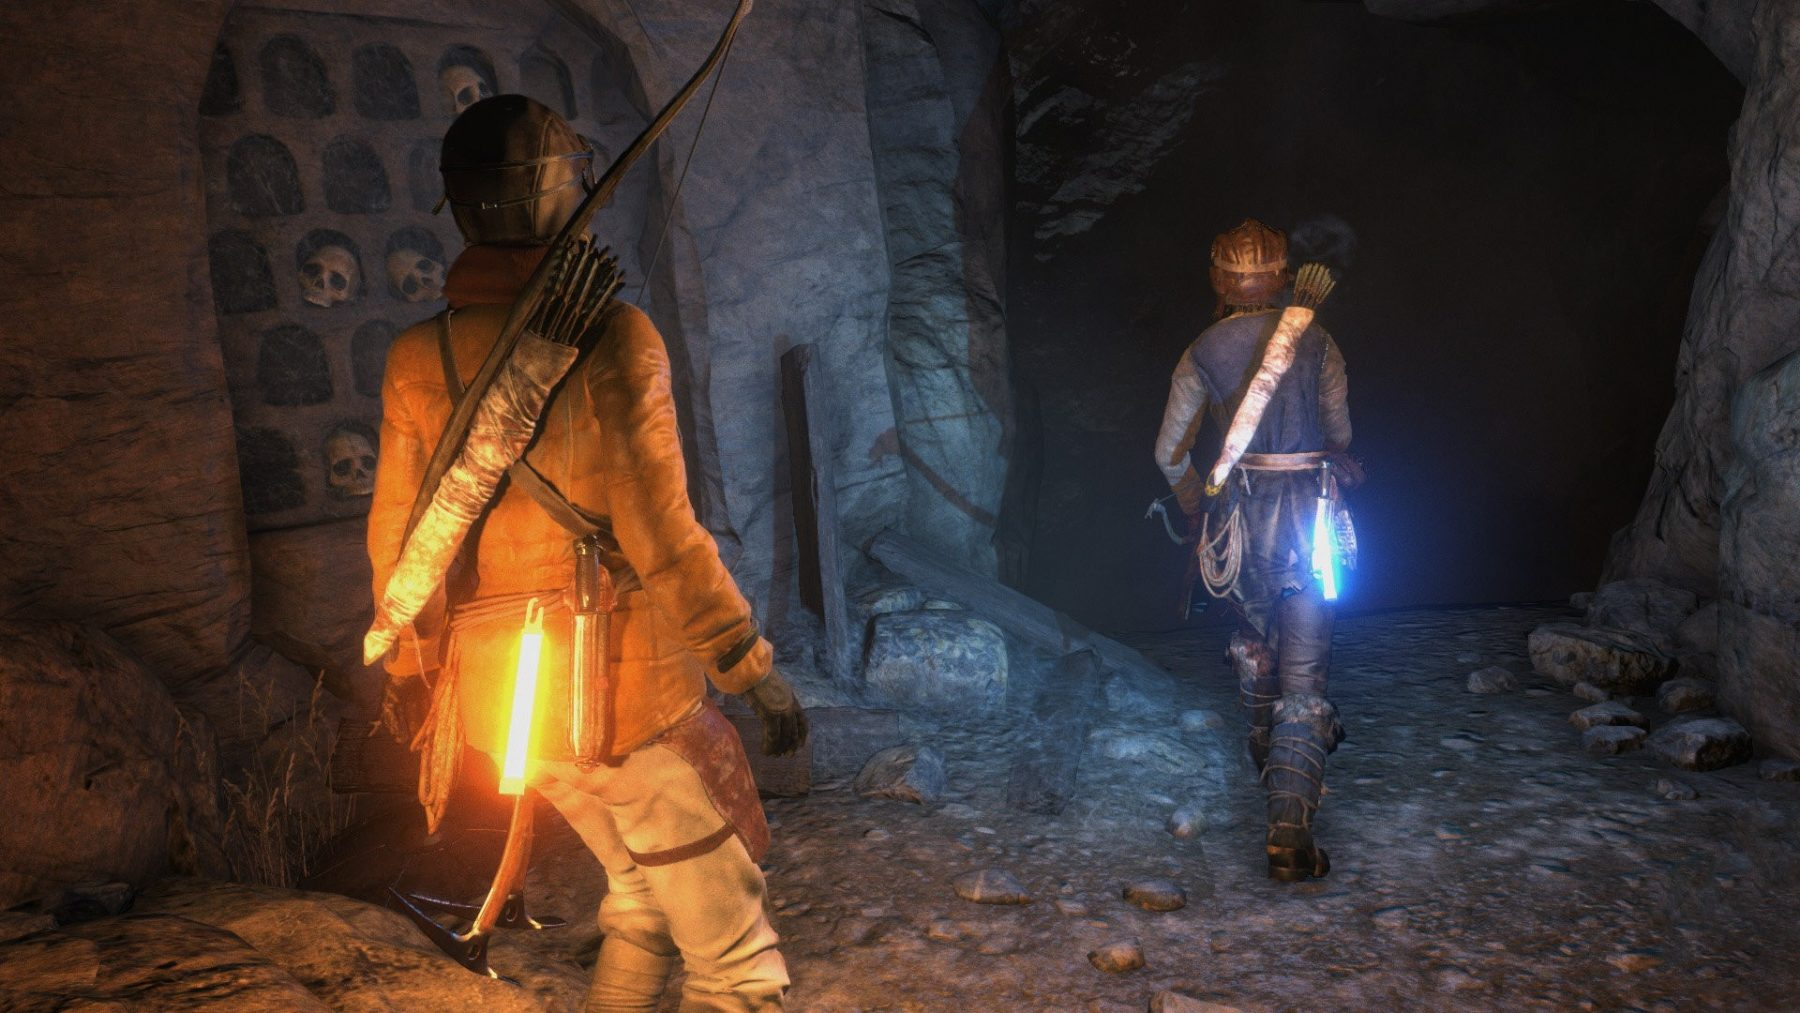 Download the hacked version of the Rise of the Tomb Raider